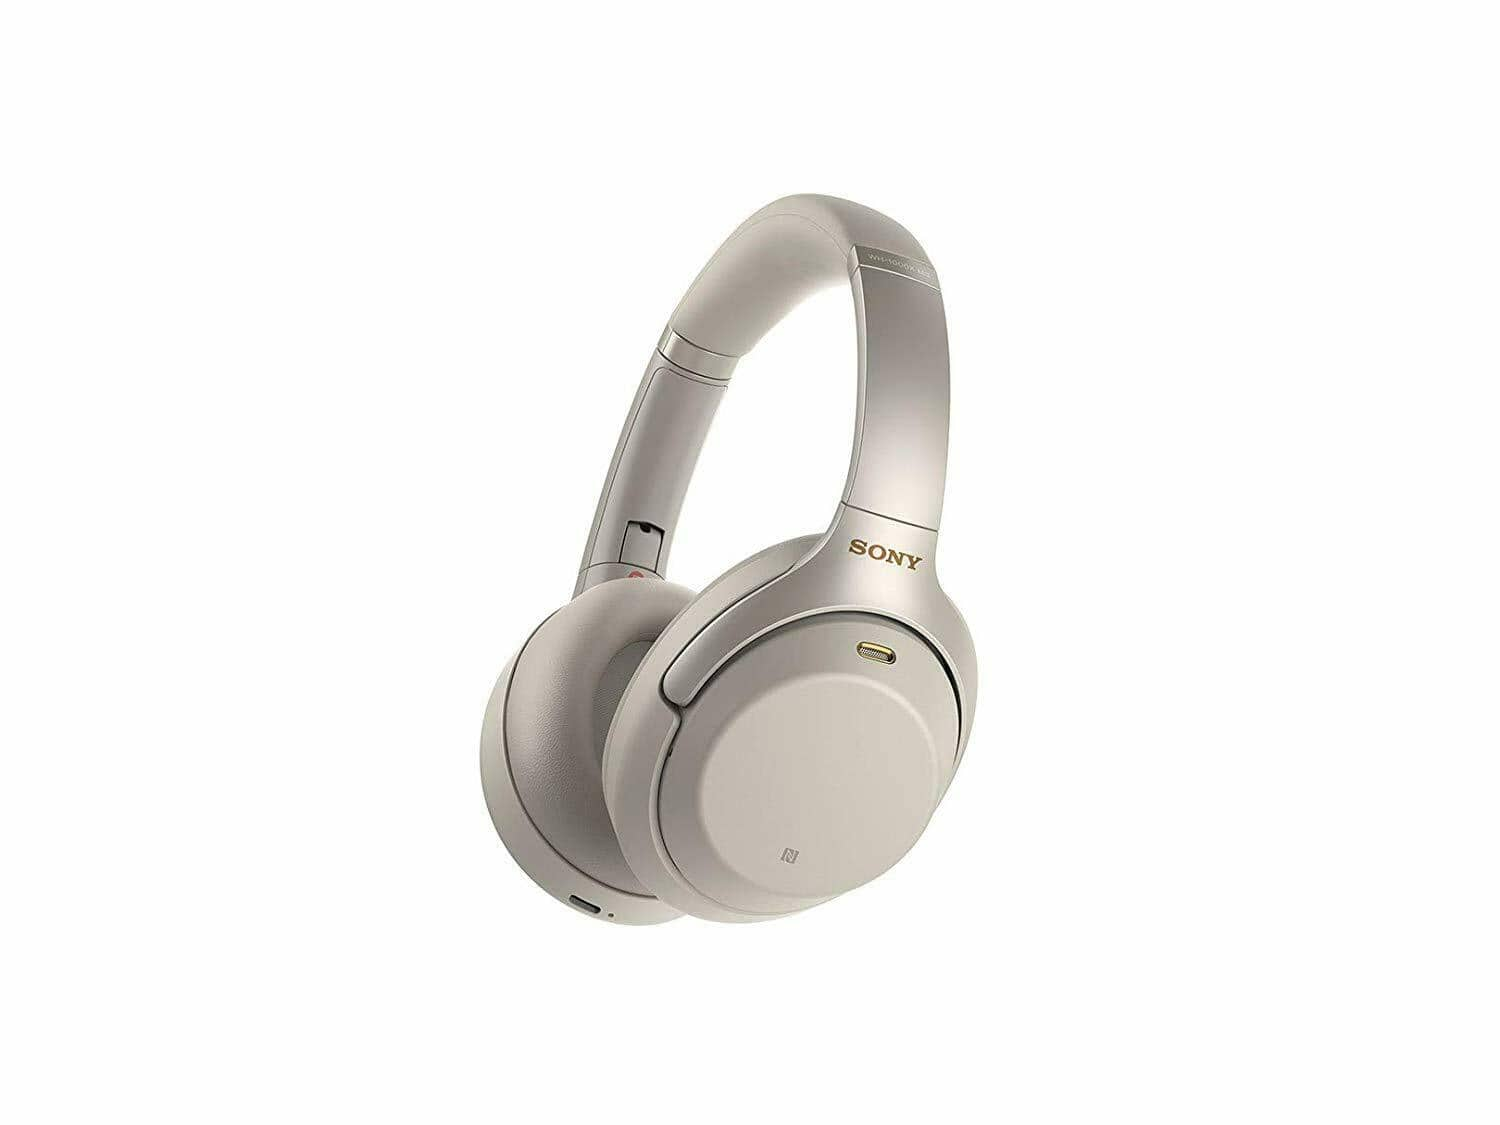 Sony WH-1000XM3 Bluetooth Wireless Noise Cancelling Headphones (Silver) $238.14